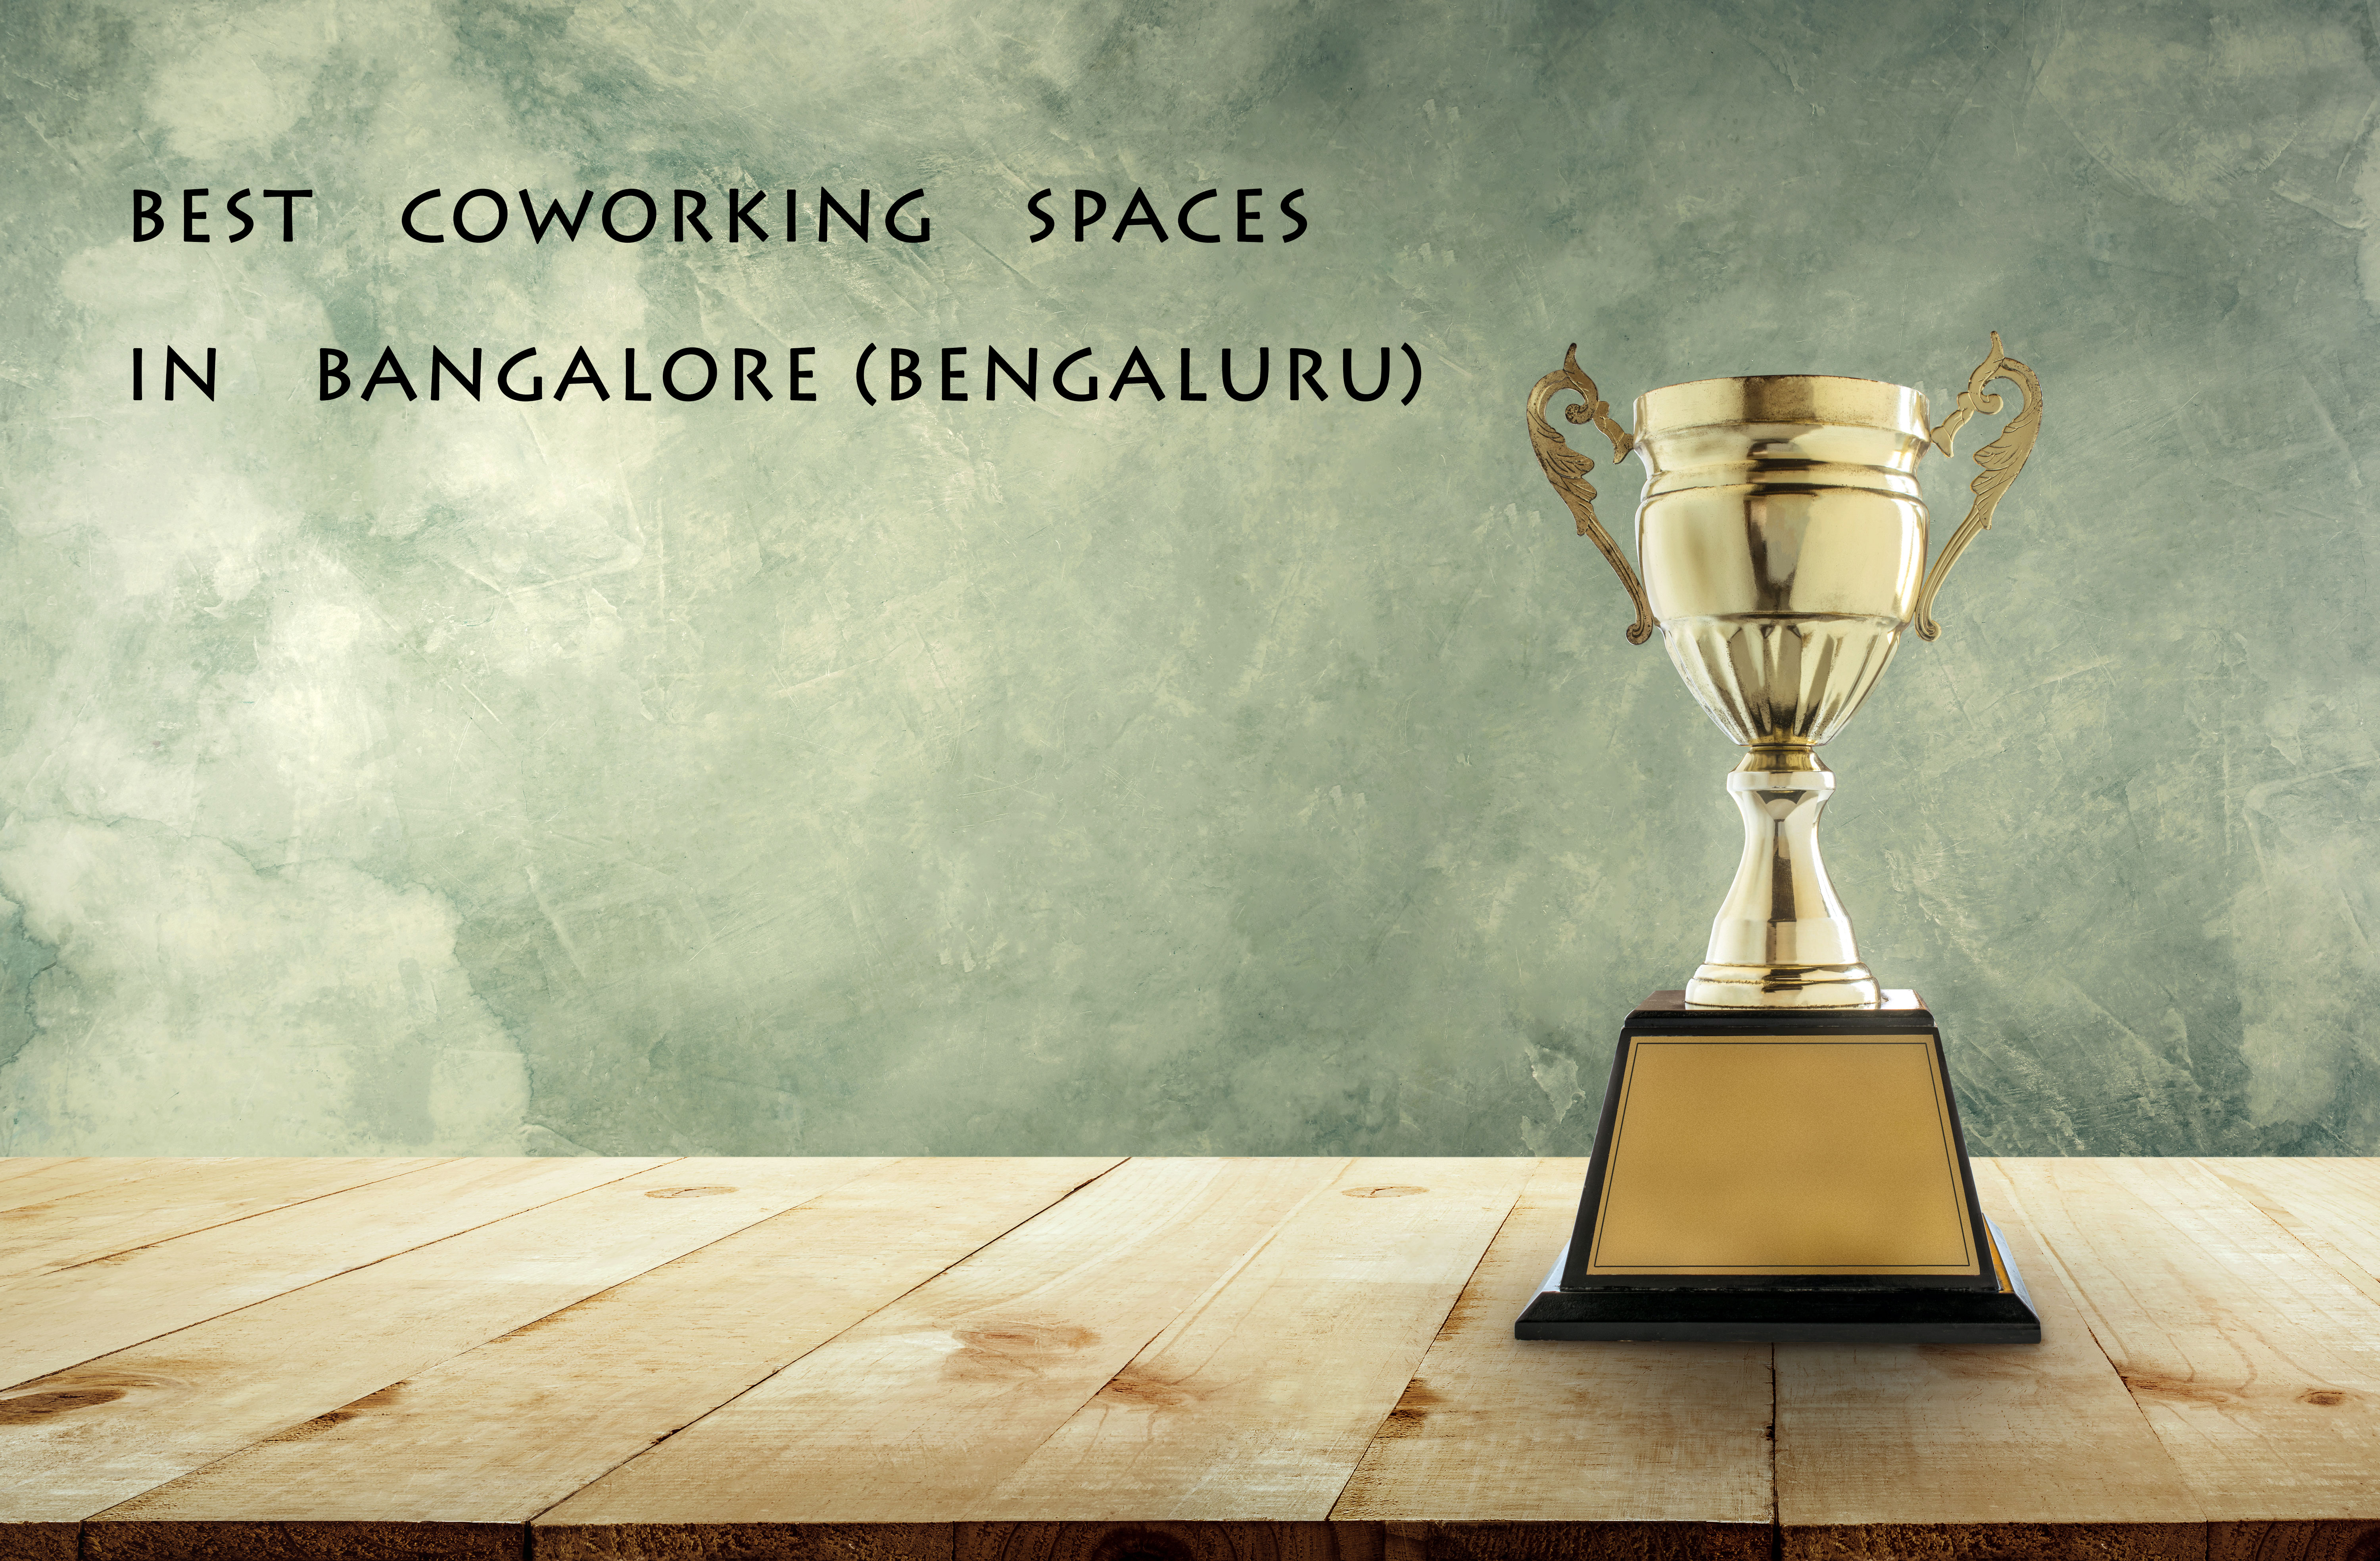 best coworking spaces in bangalore